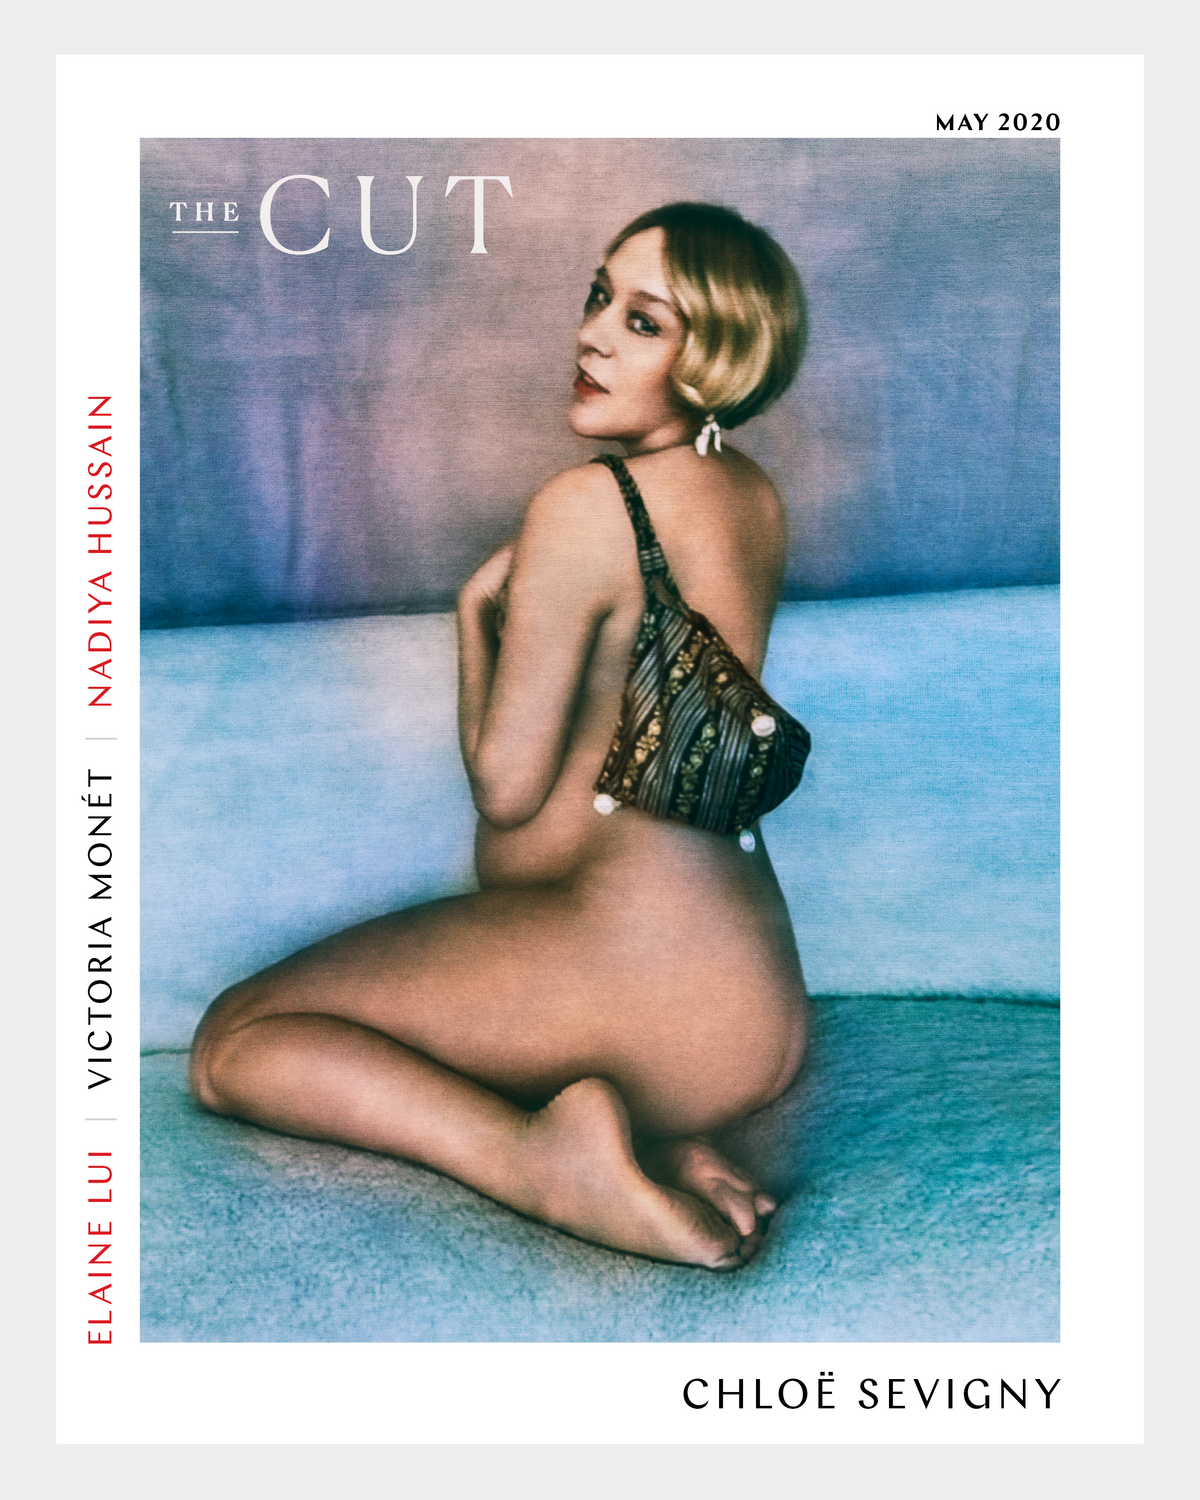 Chloë Sevigny The Cut cover May 2020